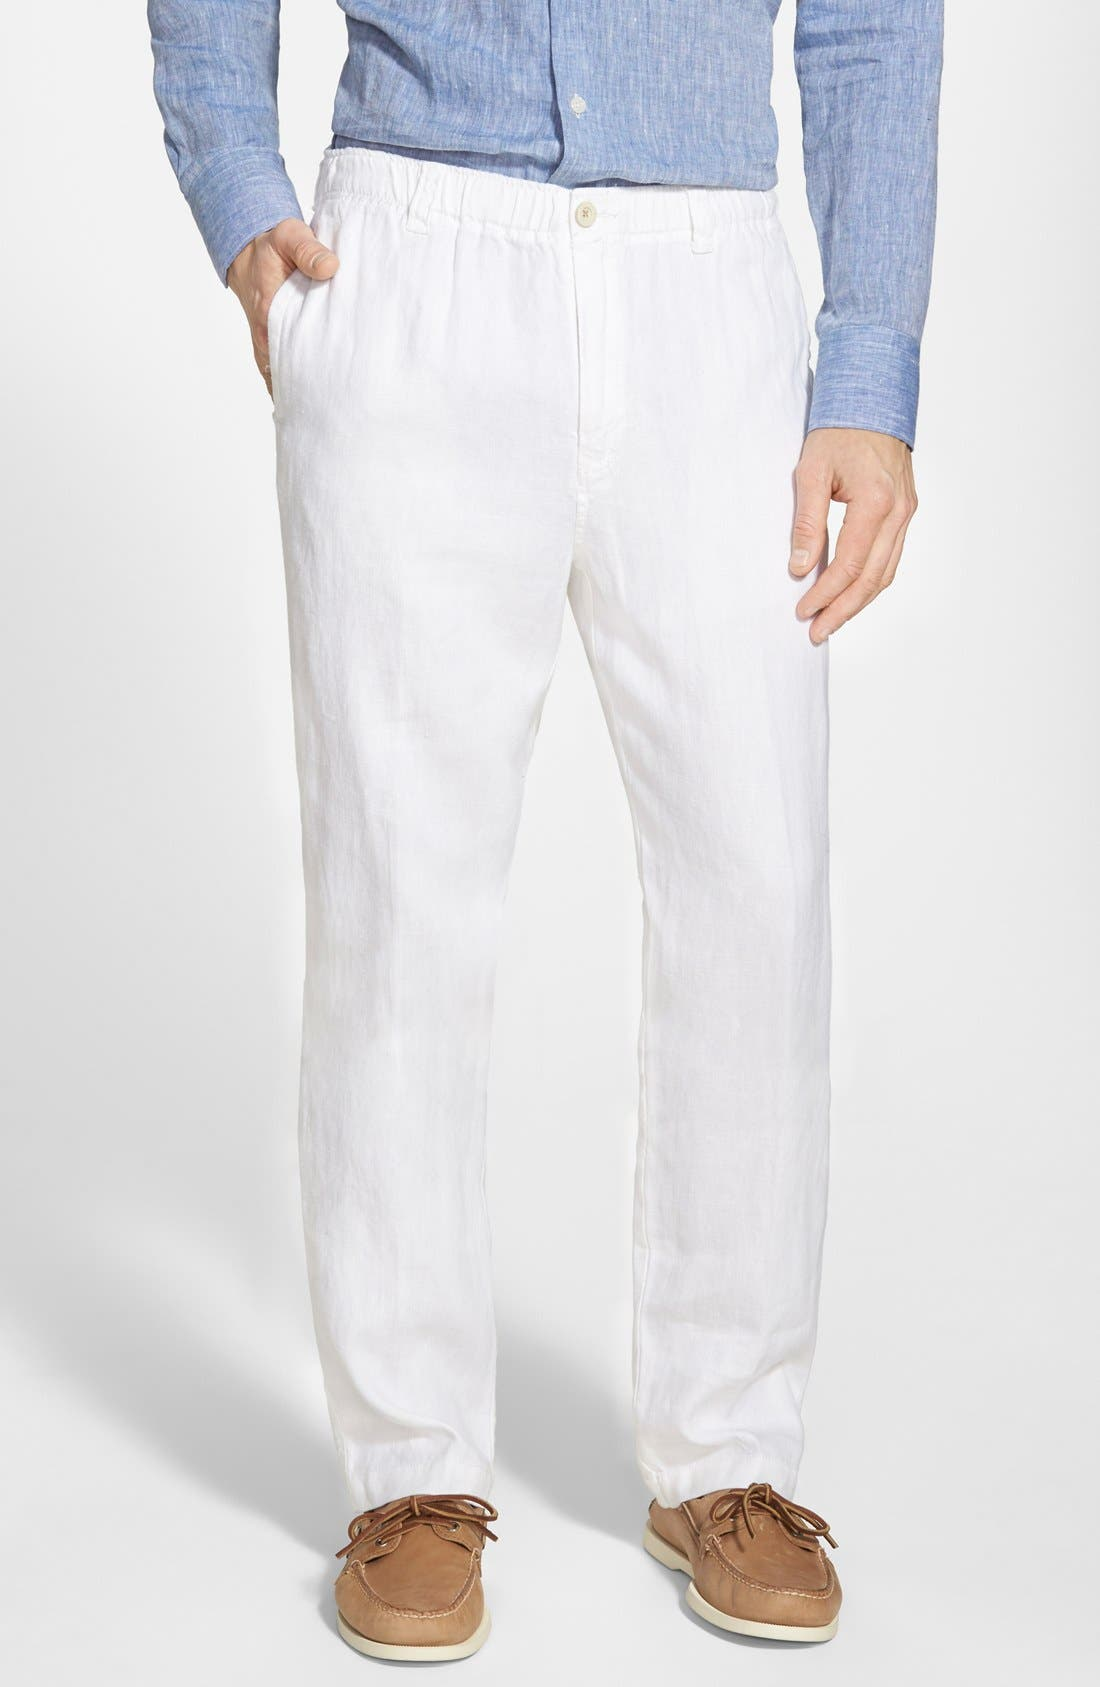 'New Linen on the Beach' Easy Fit Pants,                             Main thumbnail 1, color,                             100